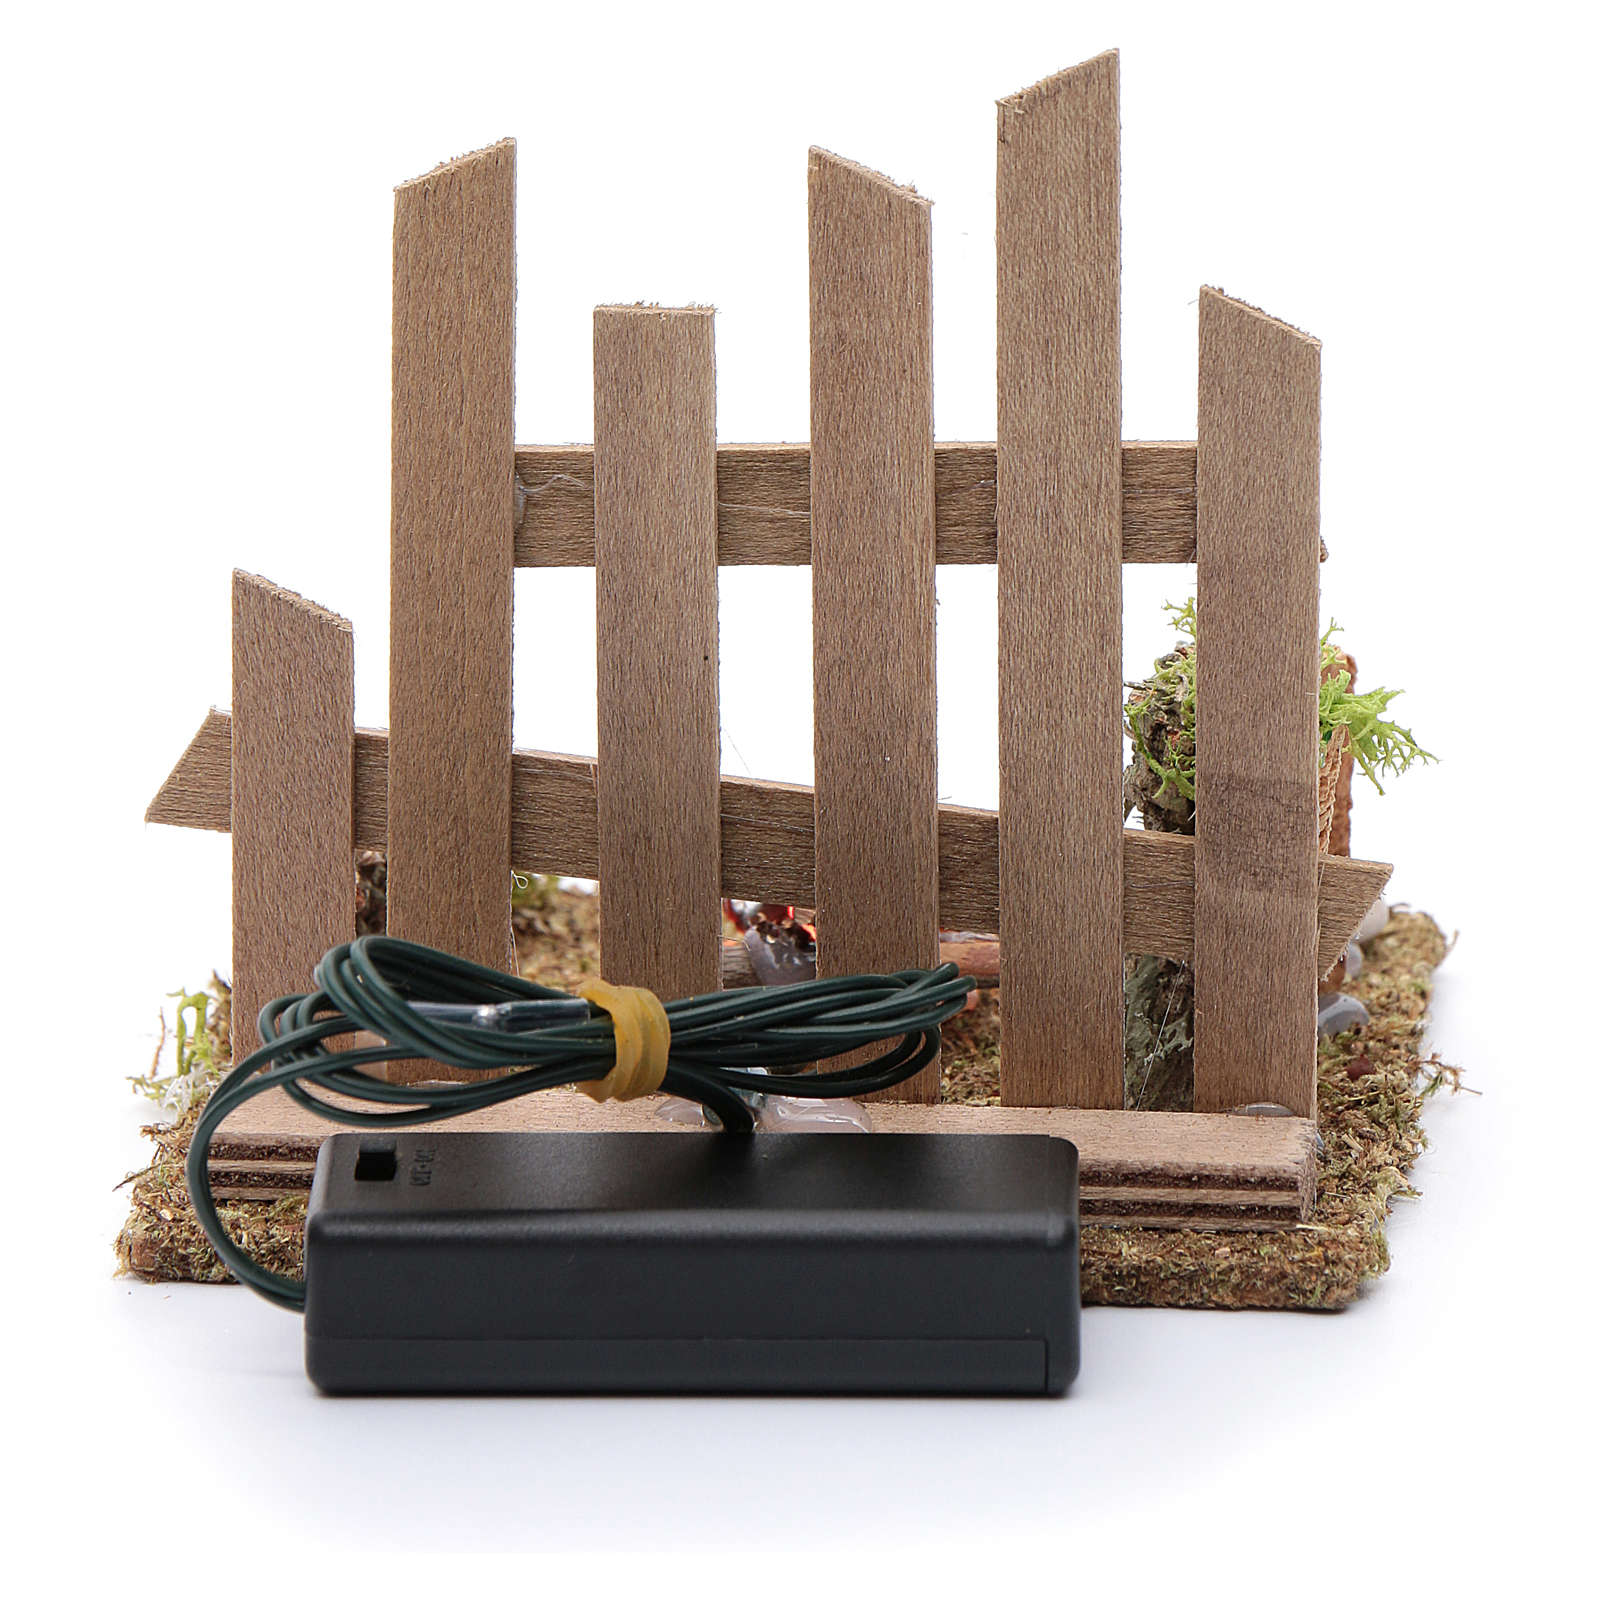 Campfire with fence and LED light with batteries 10x10x10 cm 4